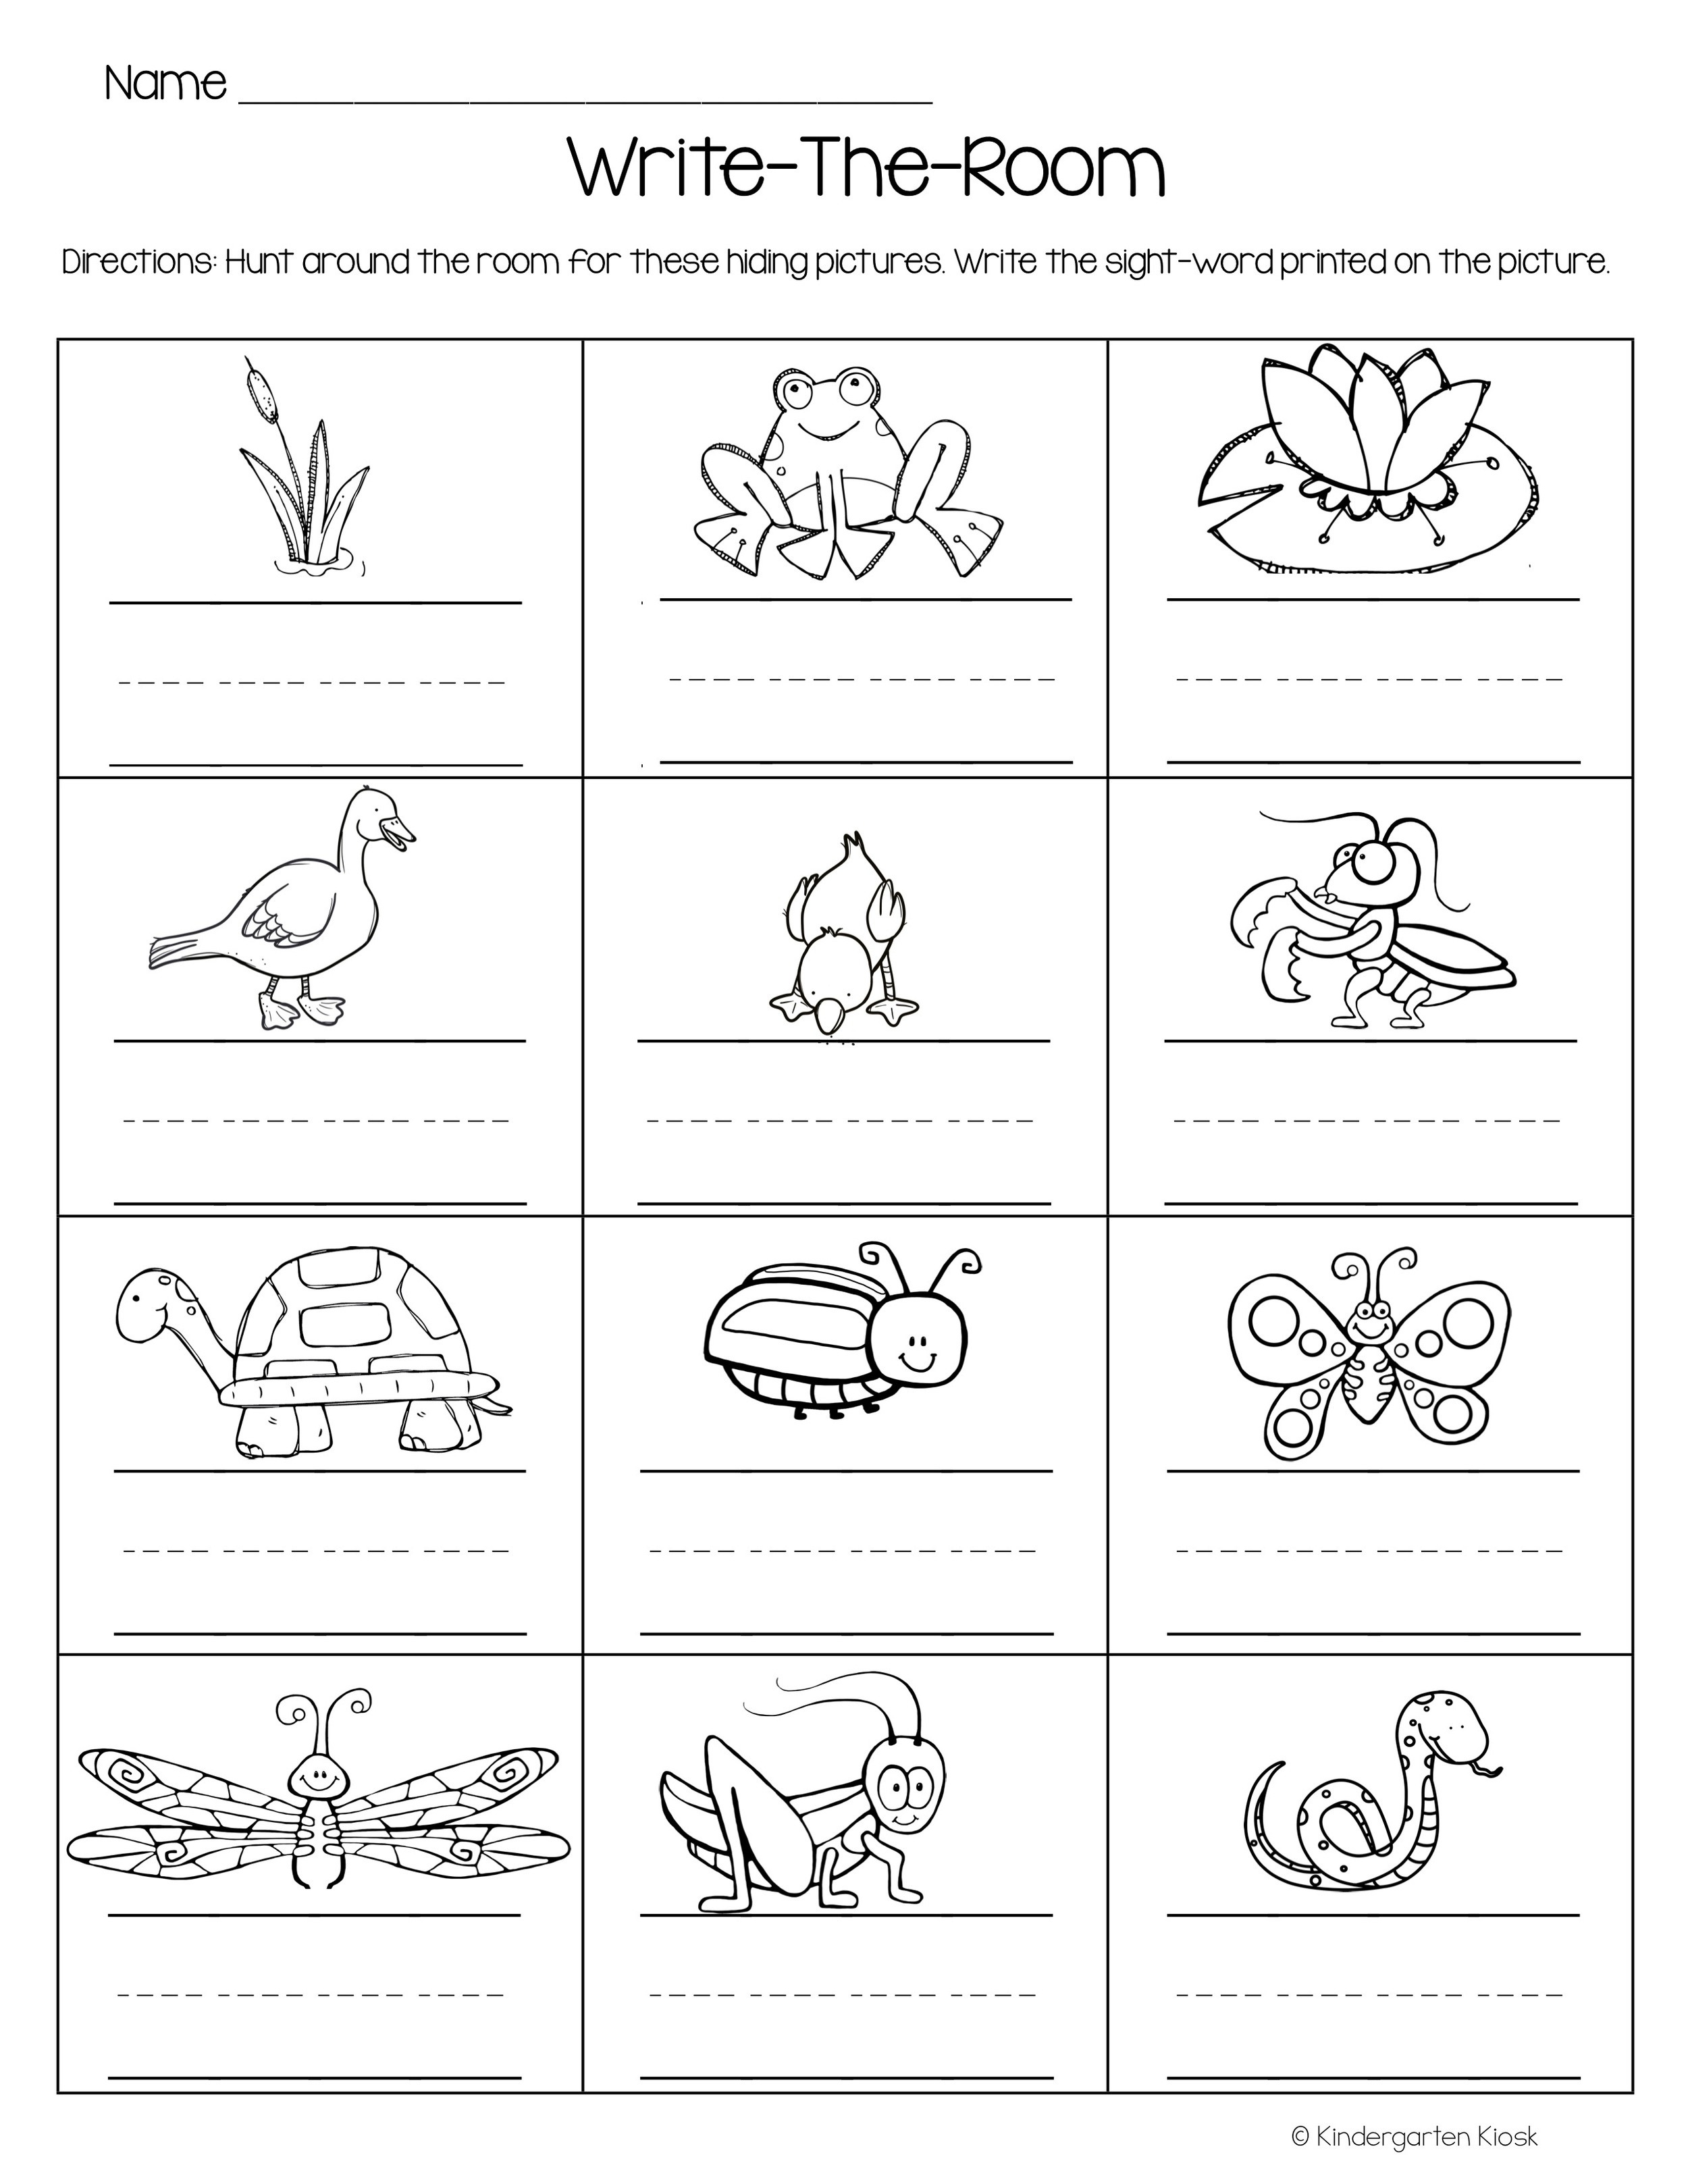 Pond Theme Independent Writing Practice — Kindergarten Kiosk